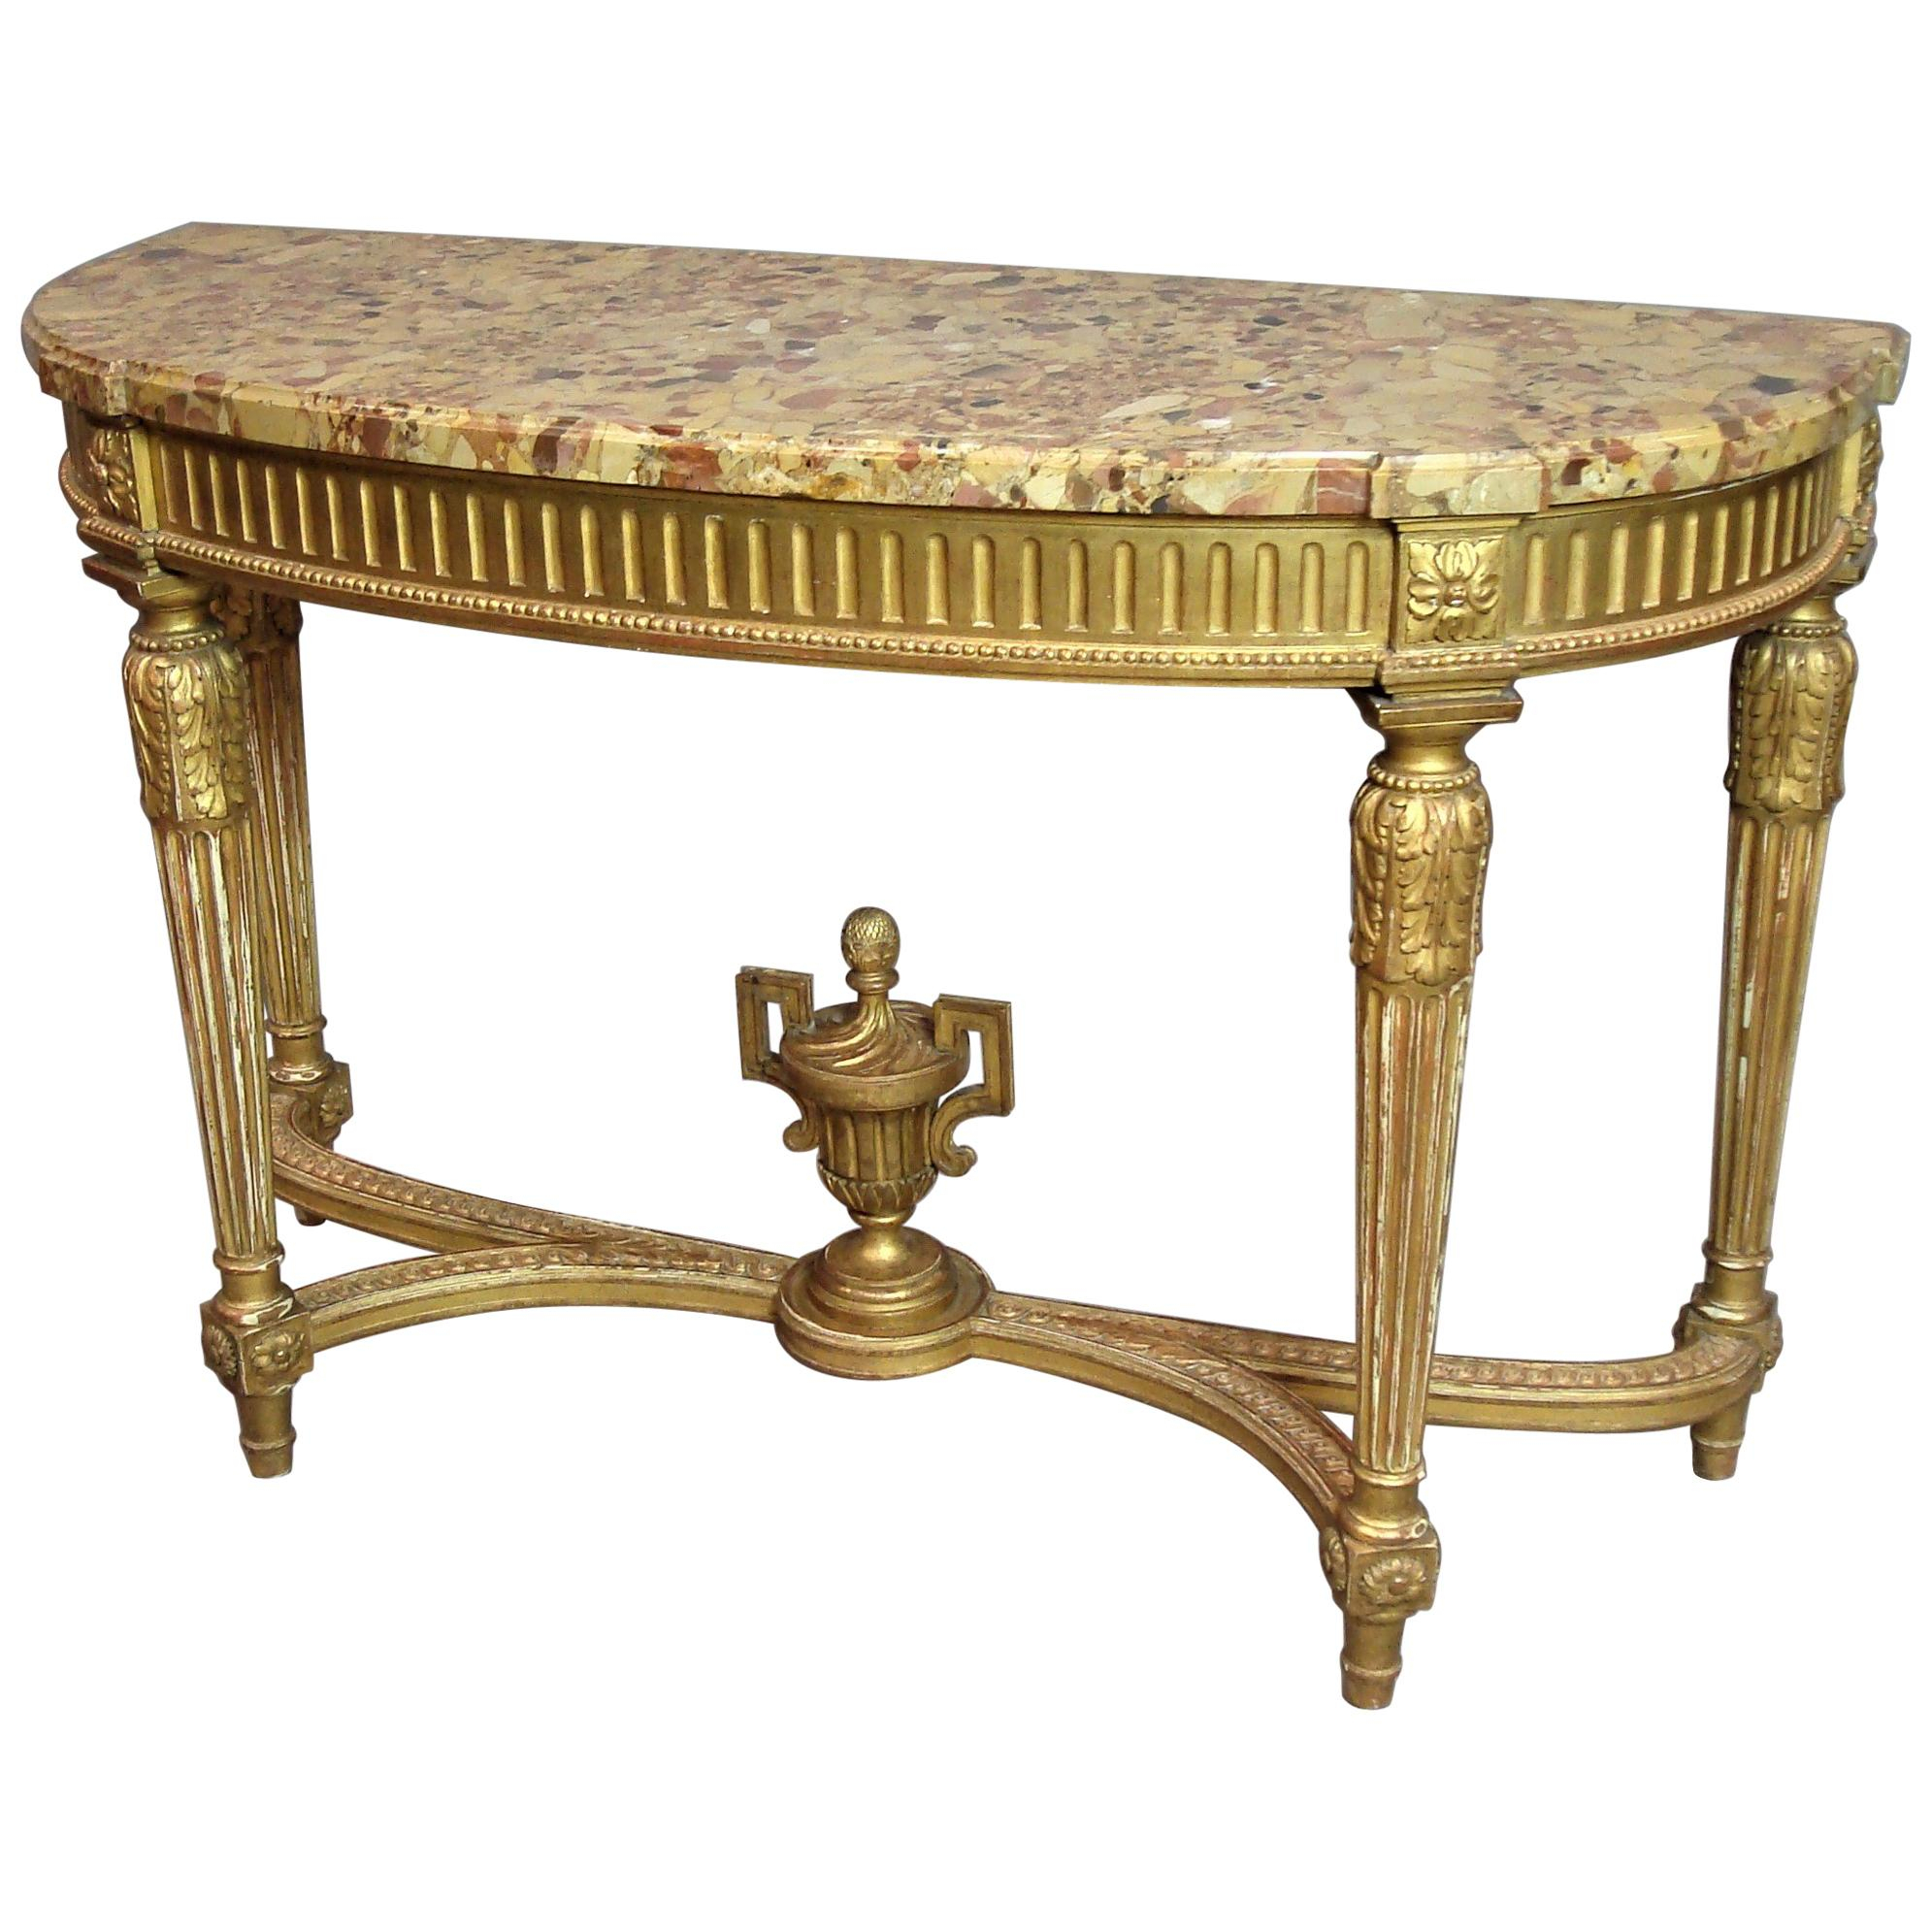 Antique Console Tables For Sale In Europe - 1Stdibs inside Mix Agate Metal Frame Console Tables (Image 3 of 30)